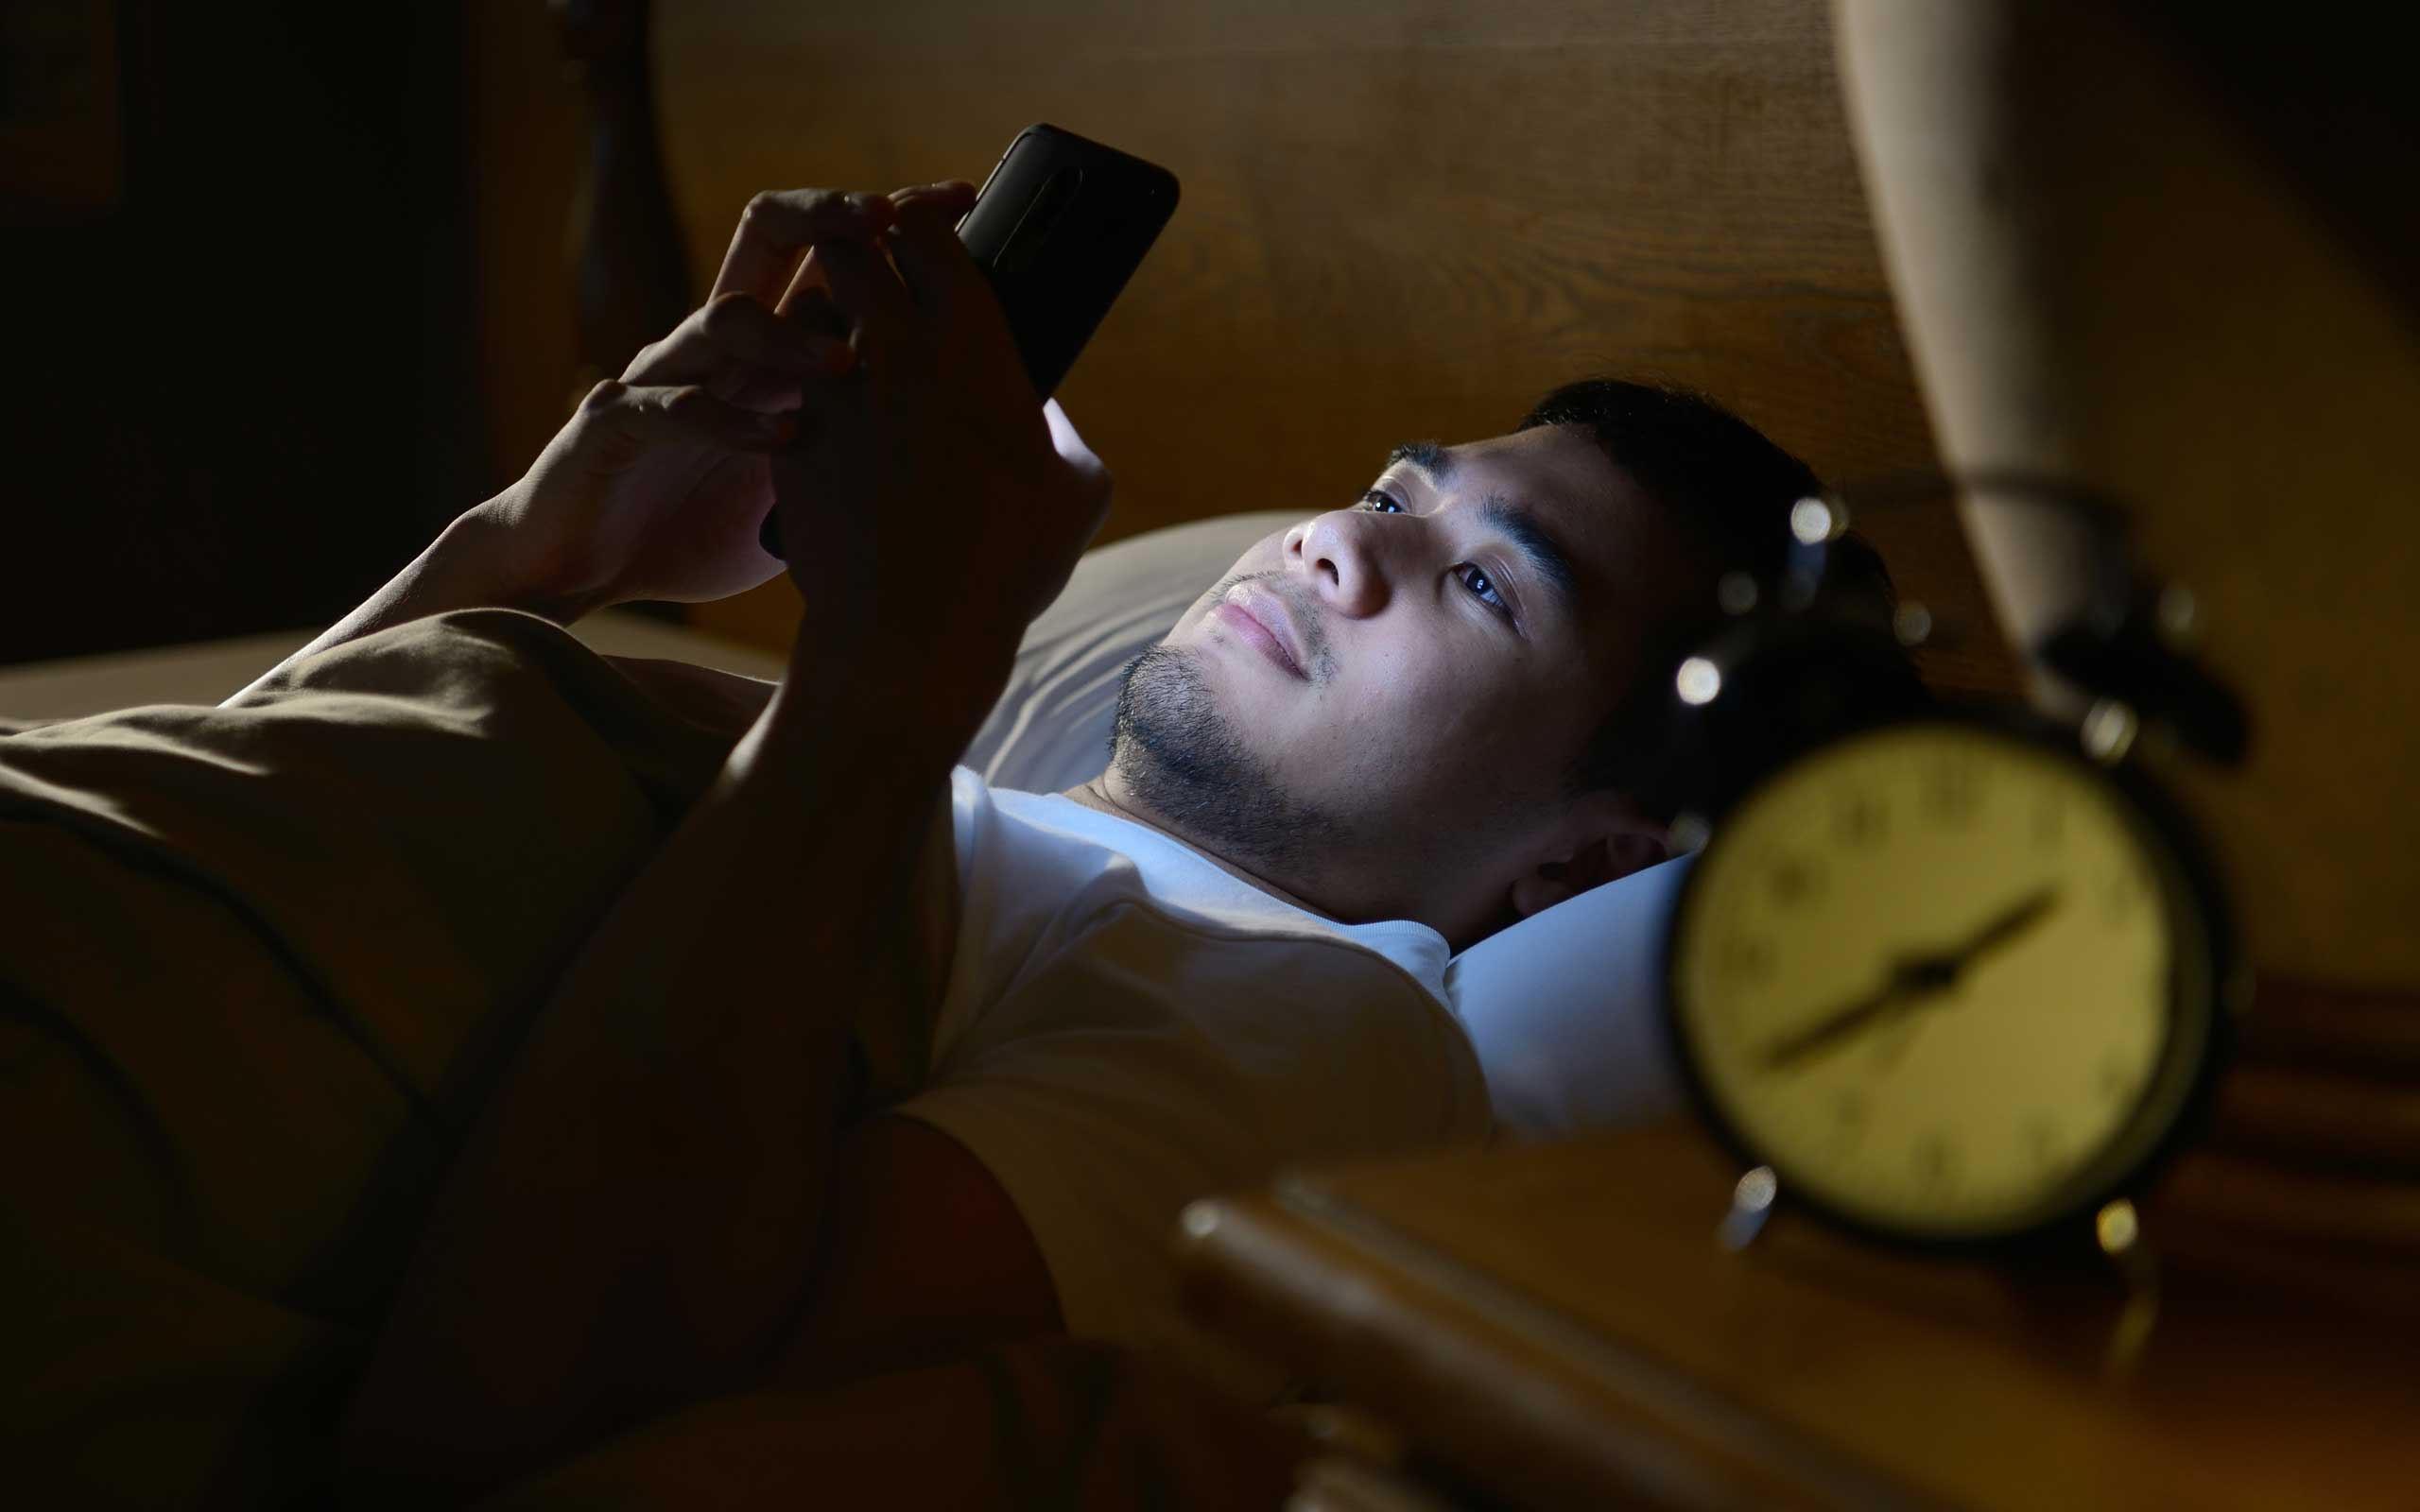 Student wide awake in bed at night texting